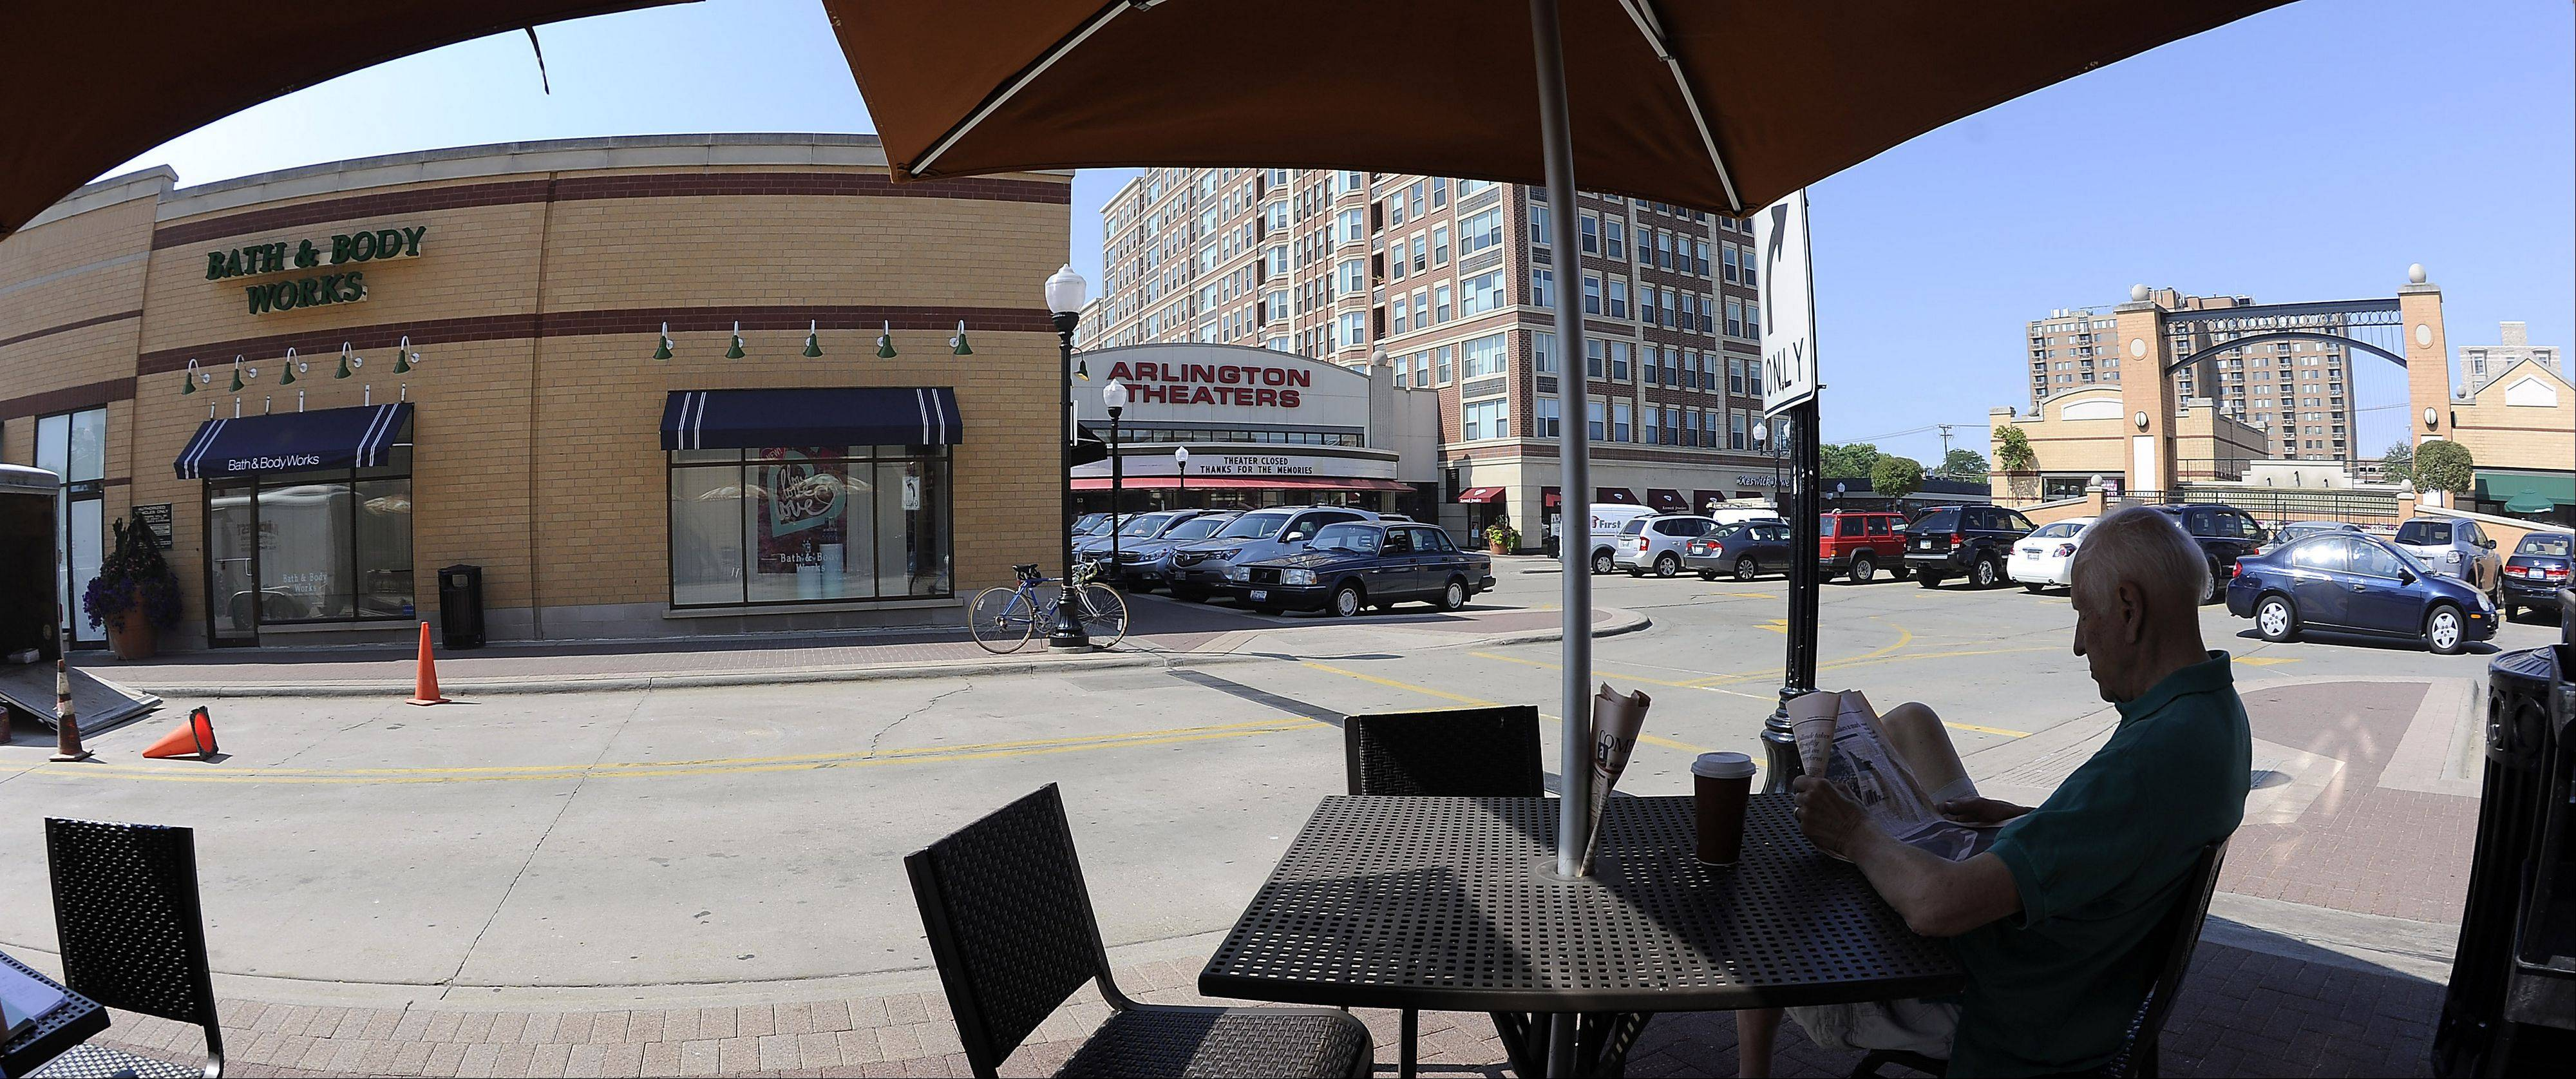 Arlington Heights officials are eager to get movies showing again downtown.